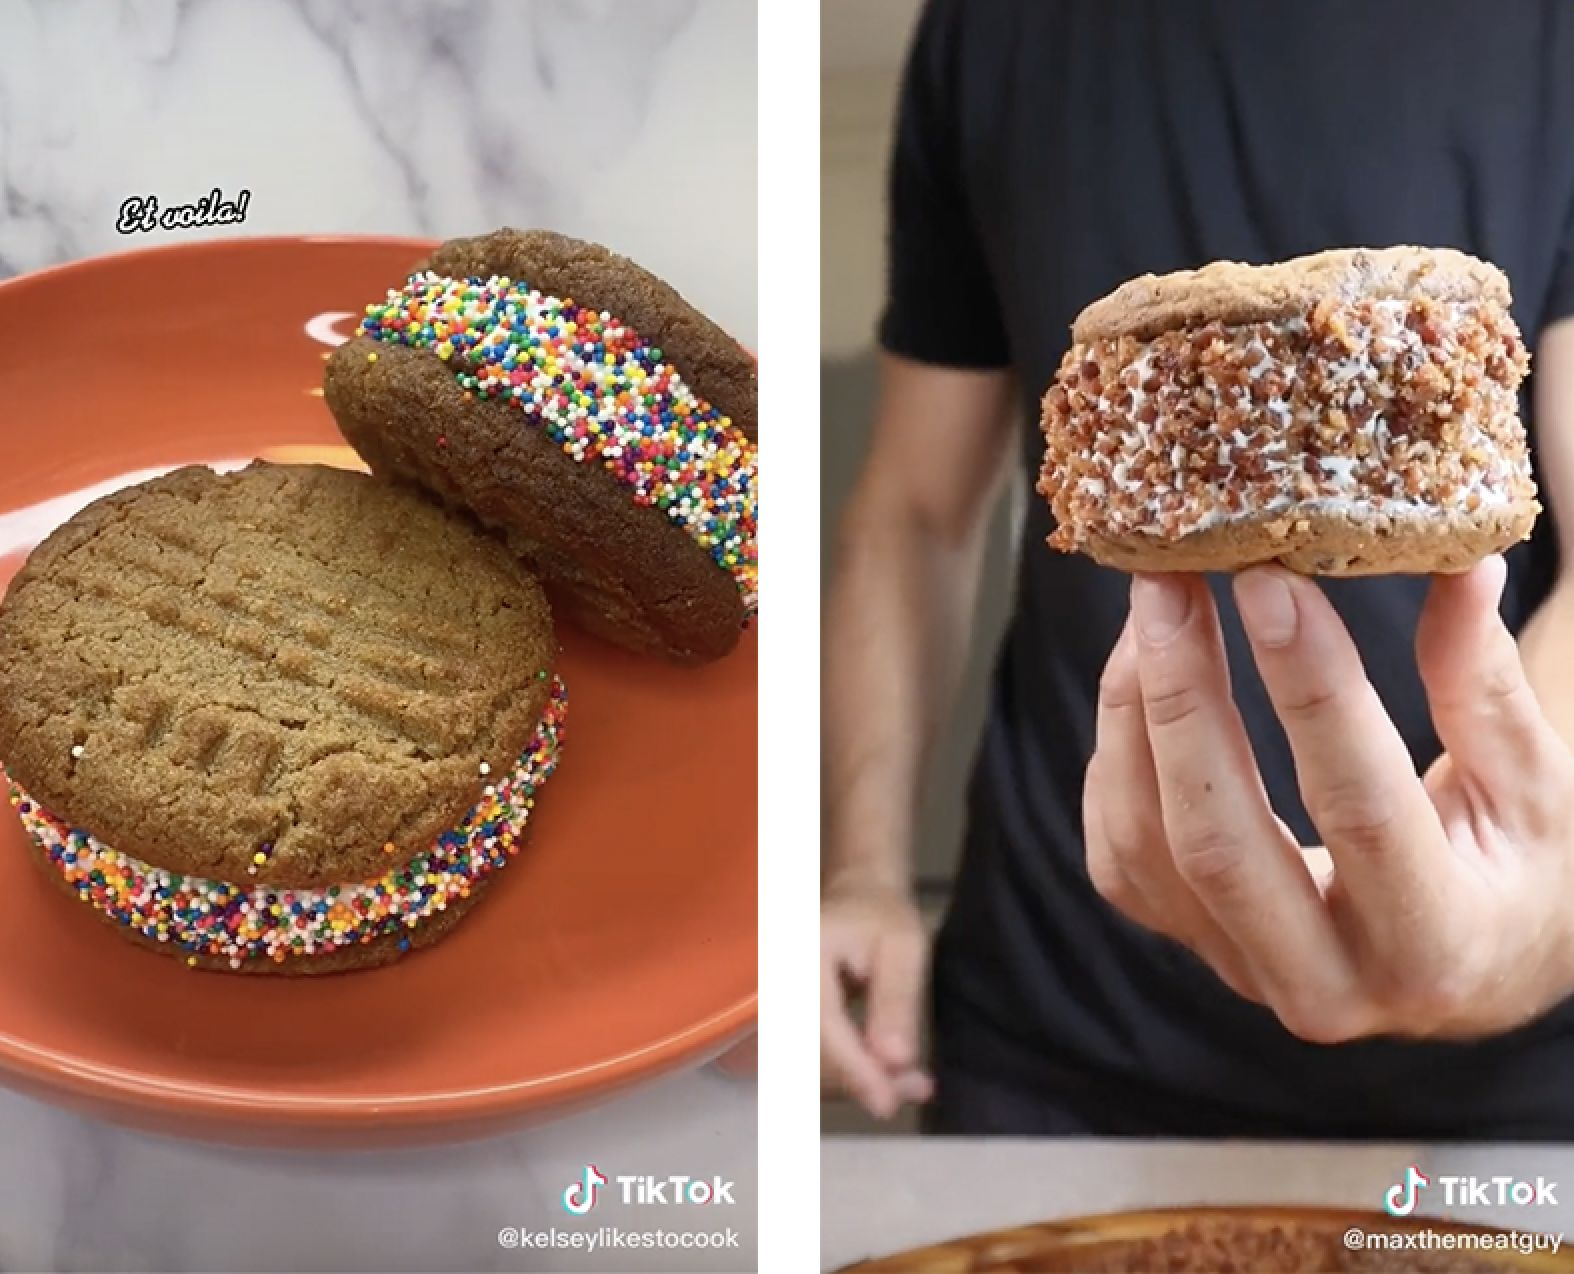 5 delicious ice cream sandwich recipes that are perfect for summer